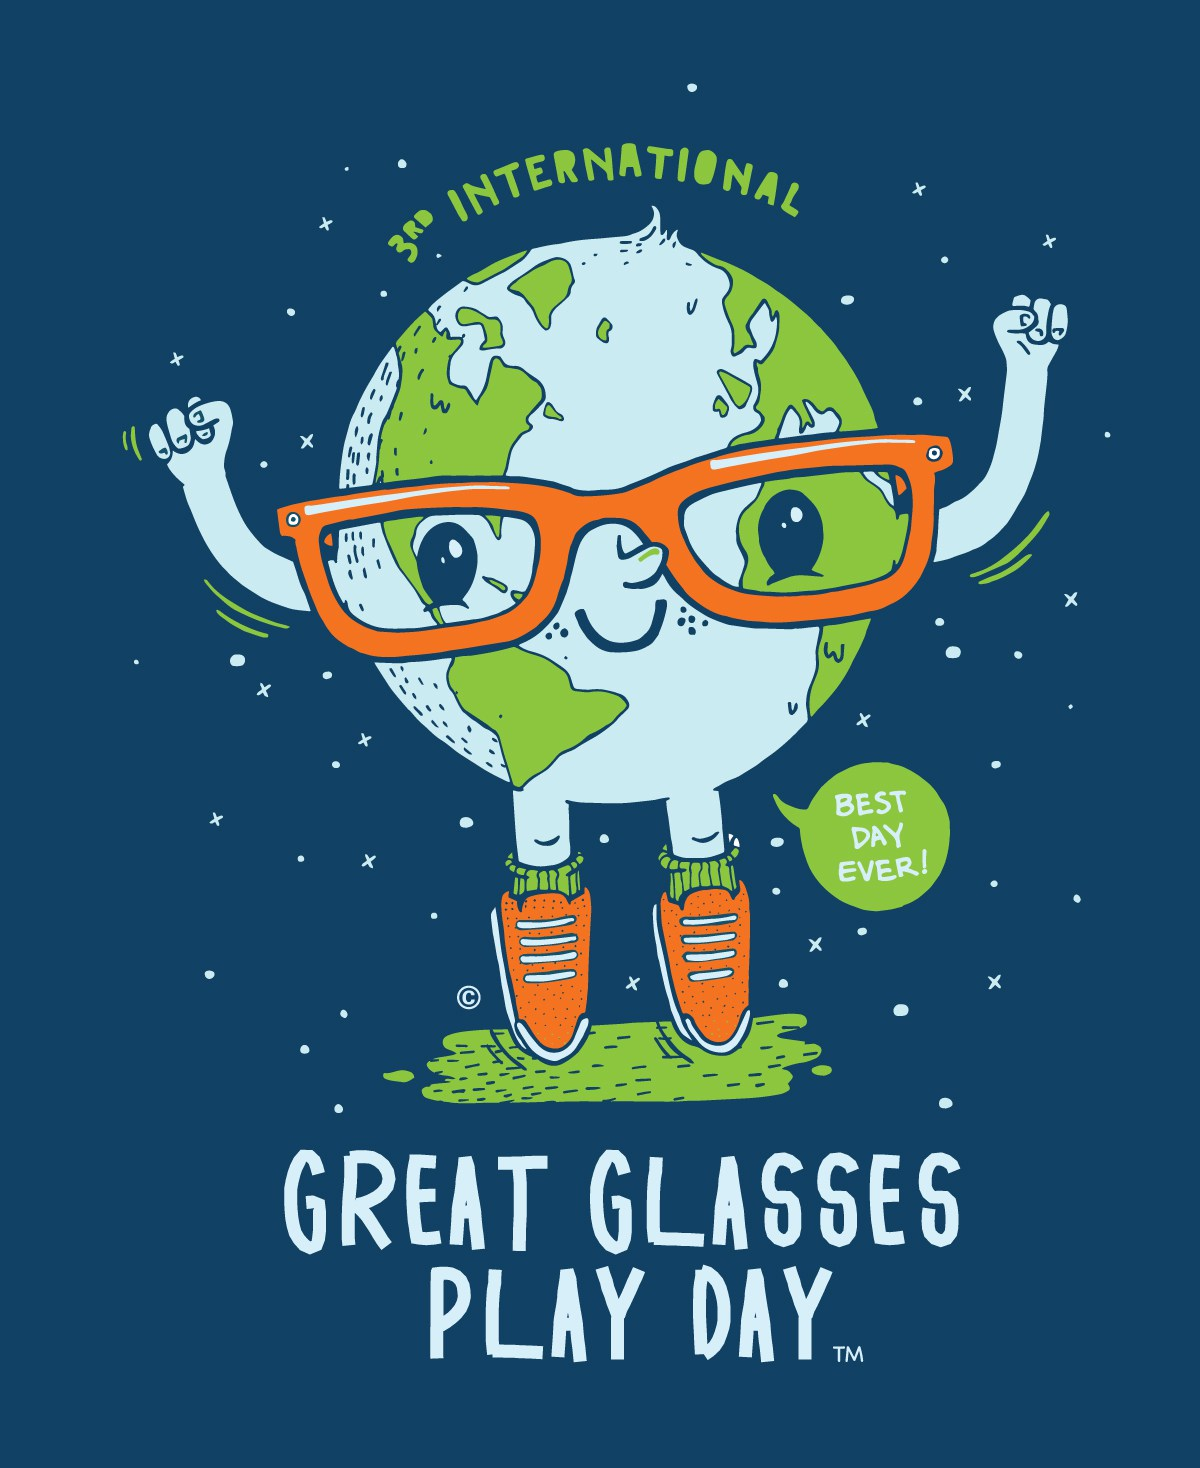 Great Glasses Play Day